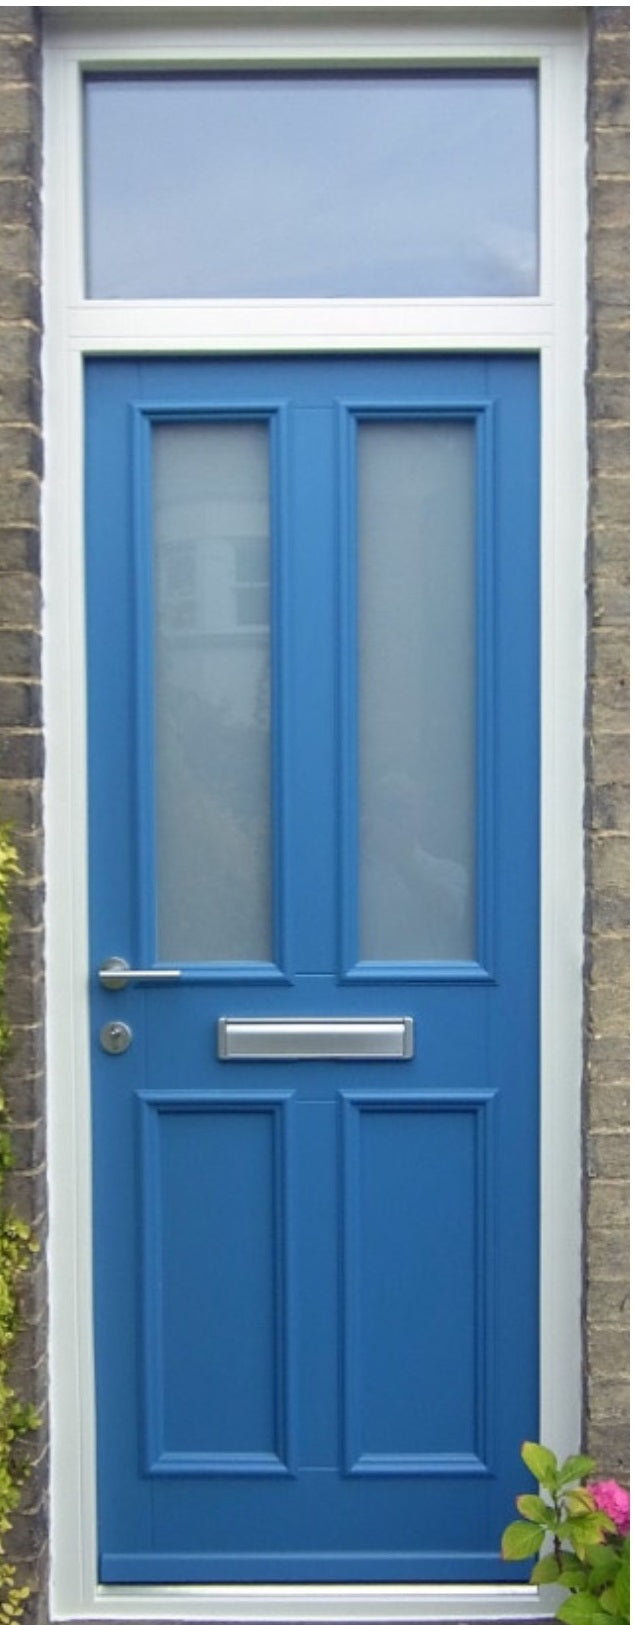 Kensington 2 Light Blue Timber Doorset Frosted With White Frame